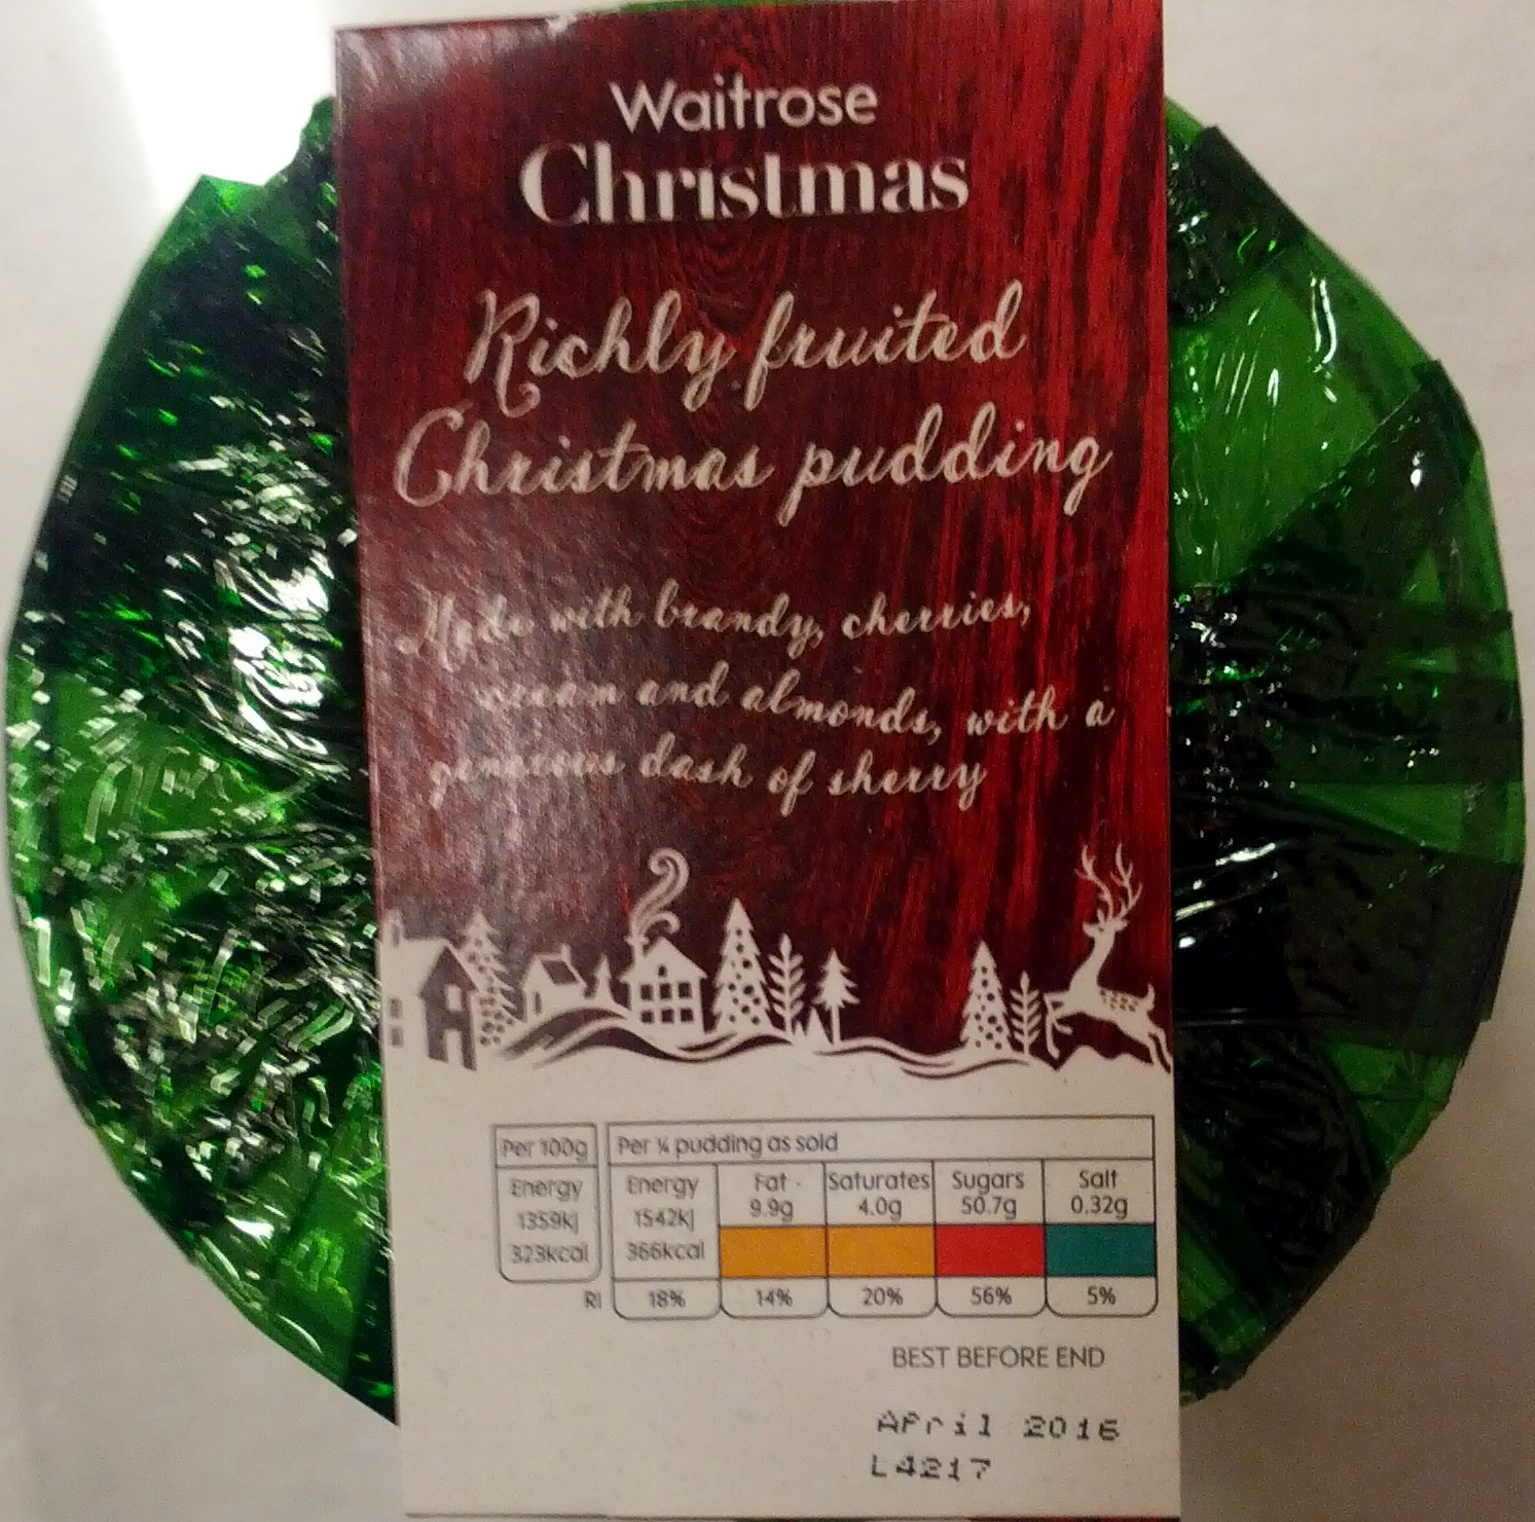 Richly Fruited Christmas Pudding - Product